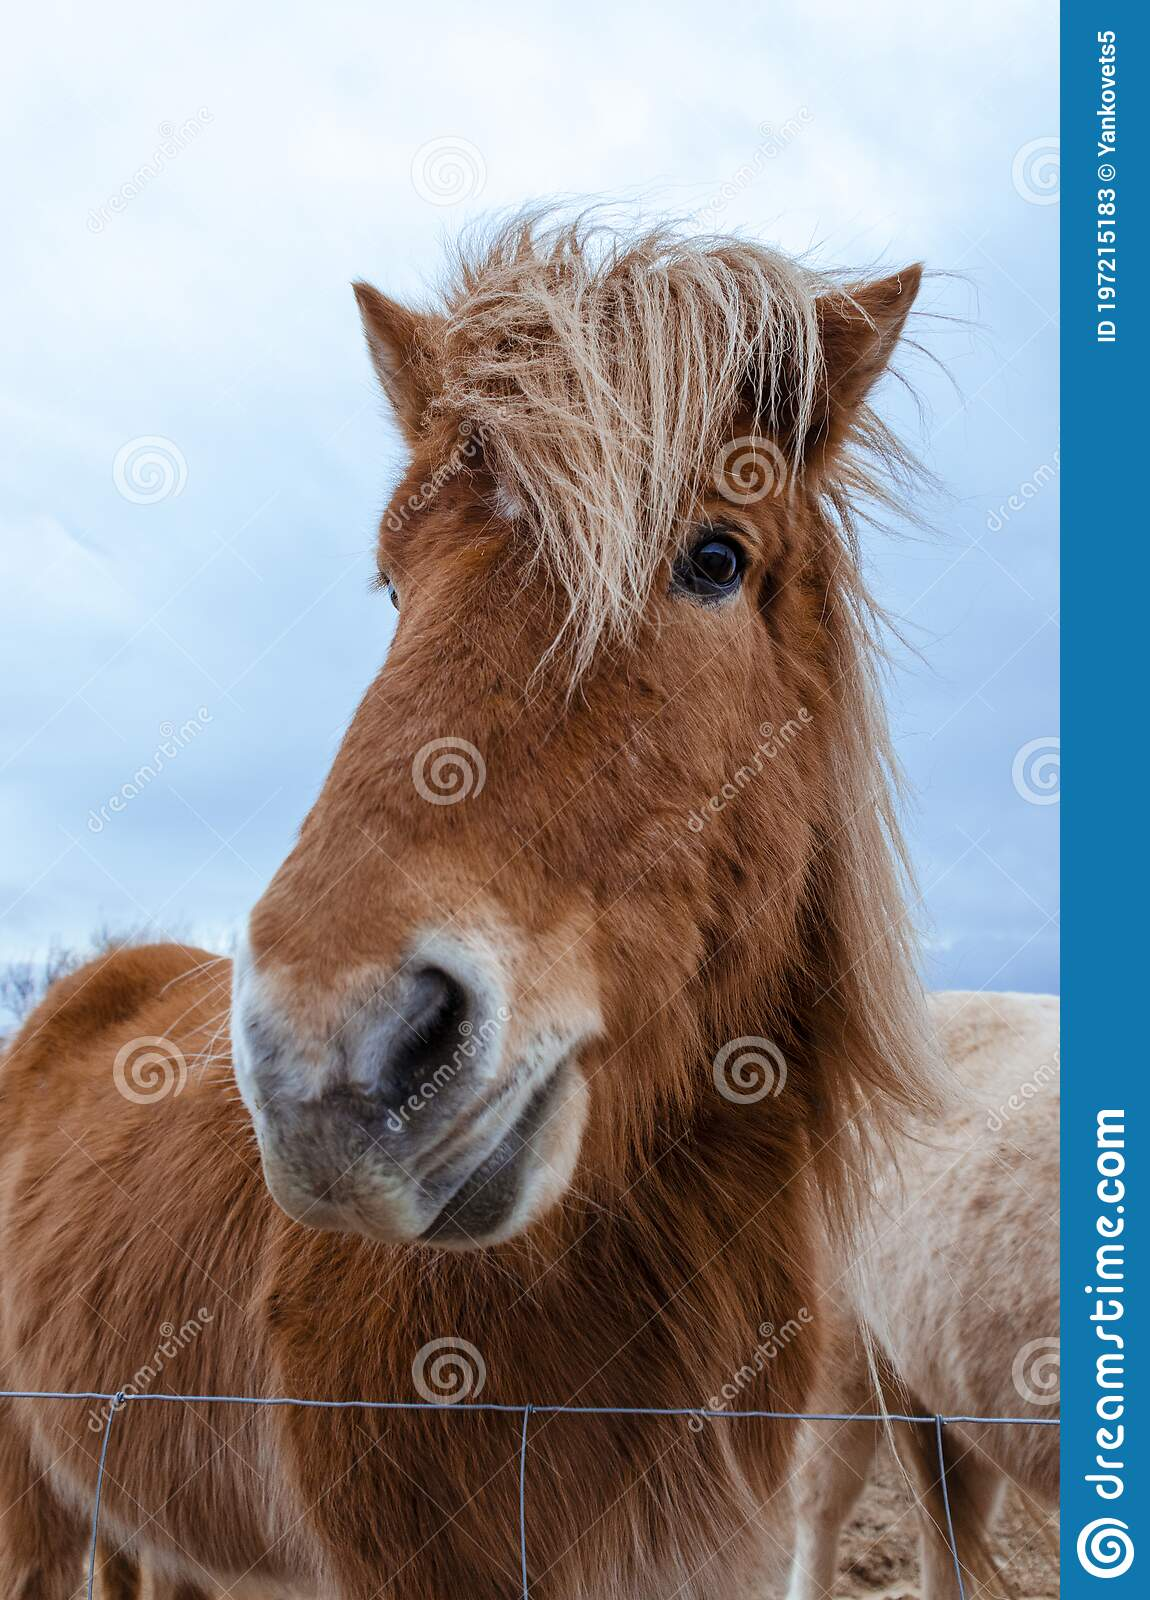 1 929 Horse Crazy Photos Free Royalty Free Stock Photos From Dreamstime